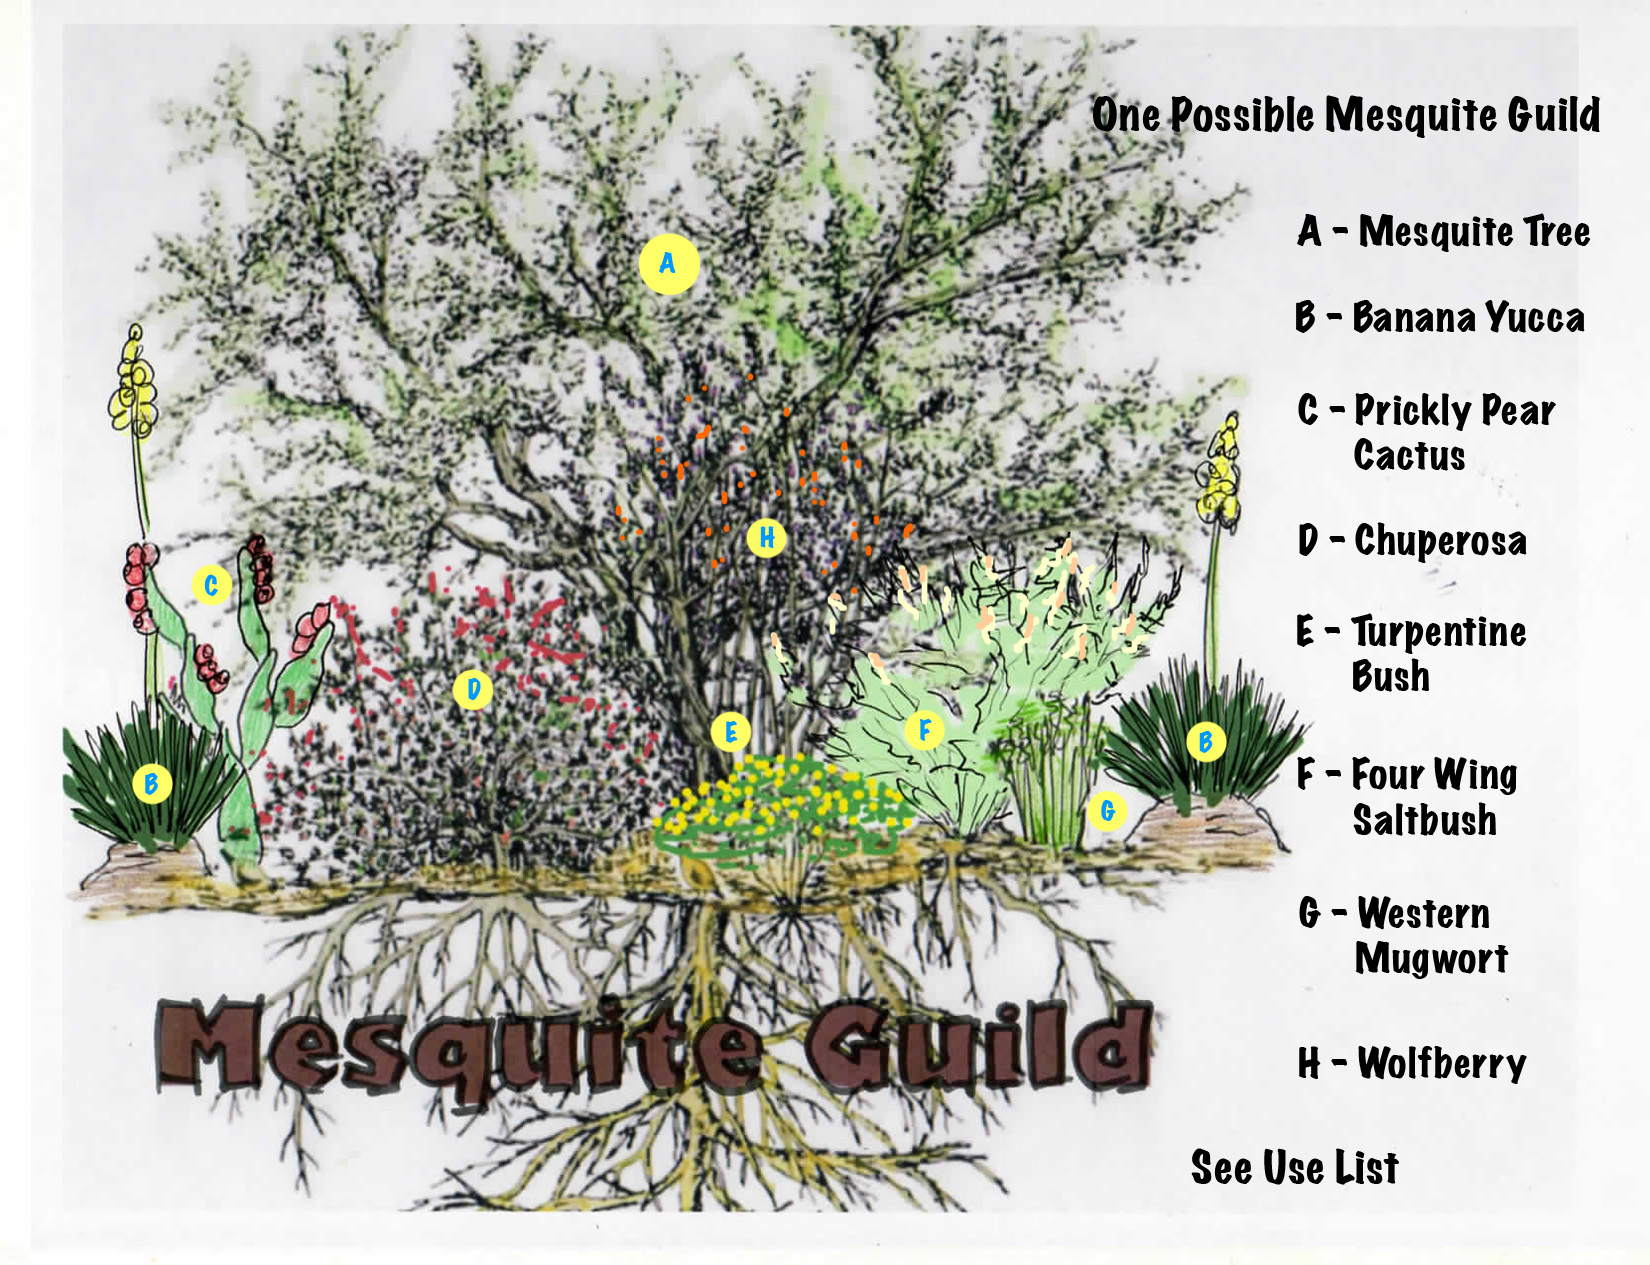 5.local mesquite guild